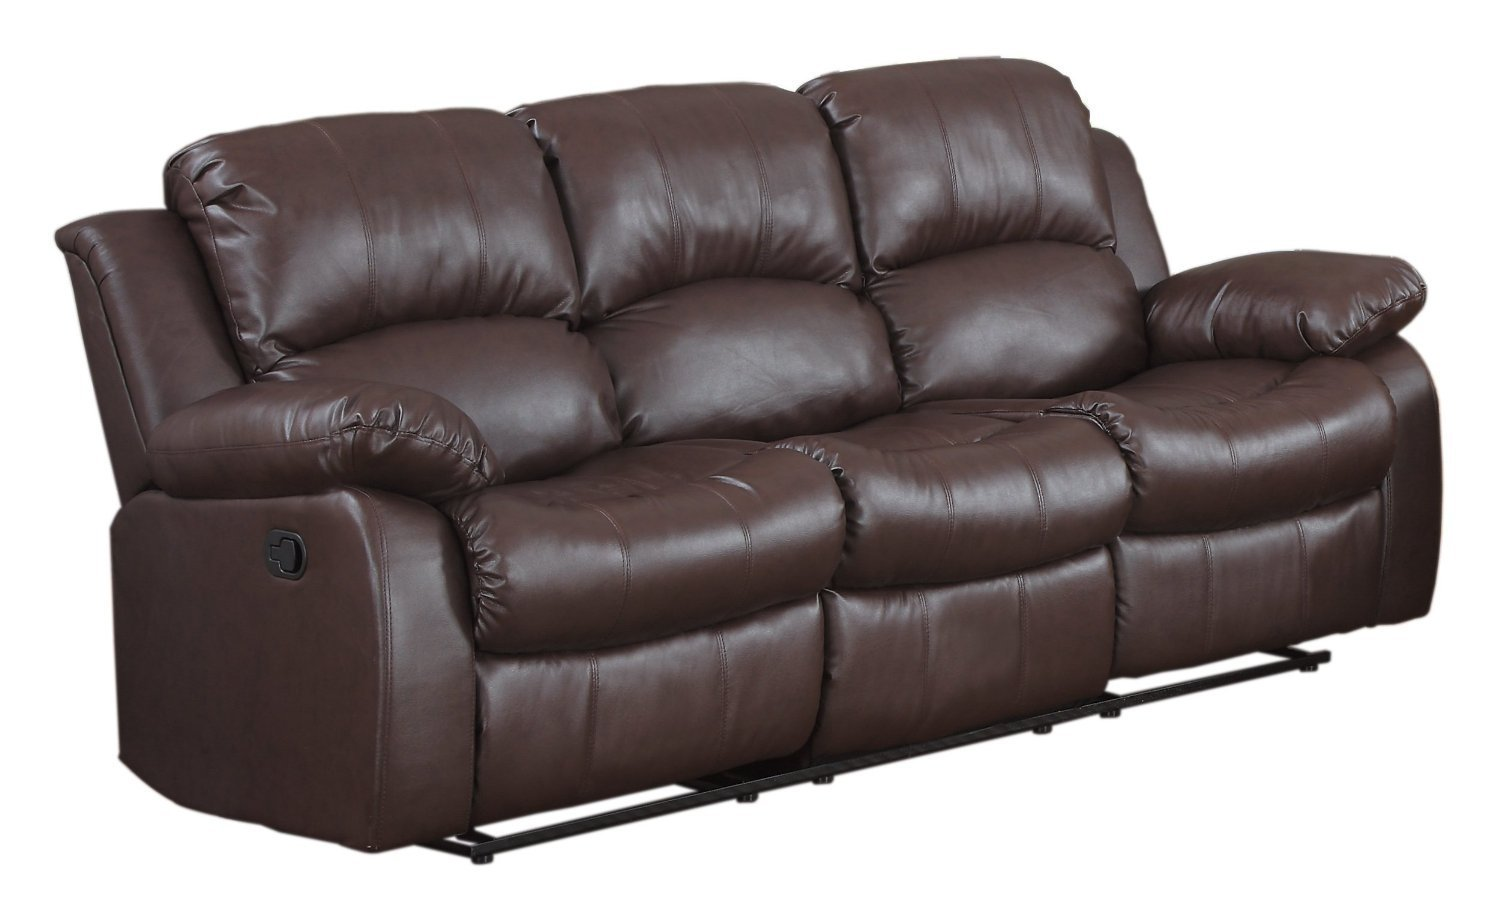 brown leather couch home furniture design. Black Bedroom Furniture Sets. Home Design Ideas